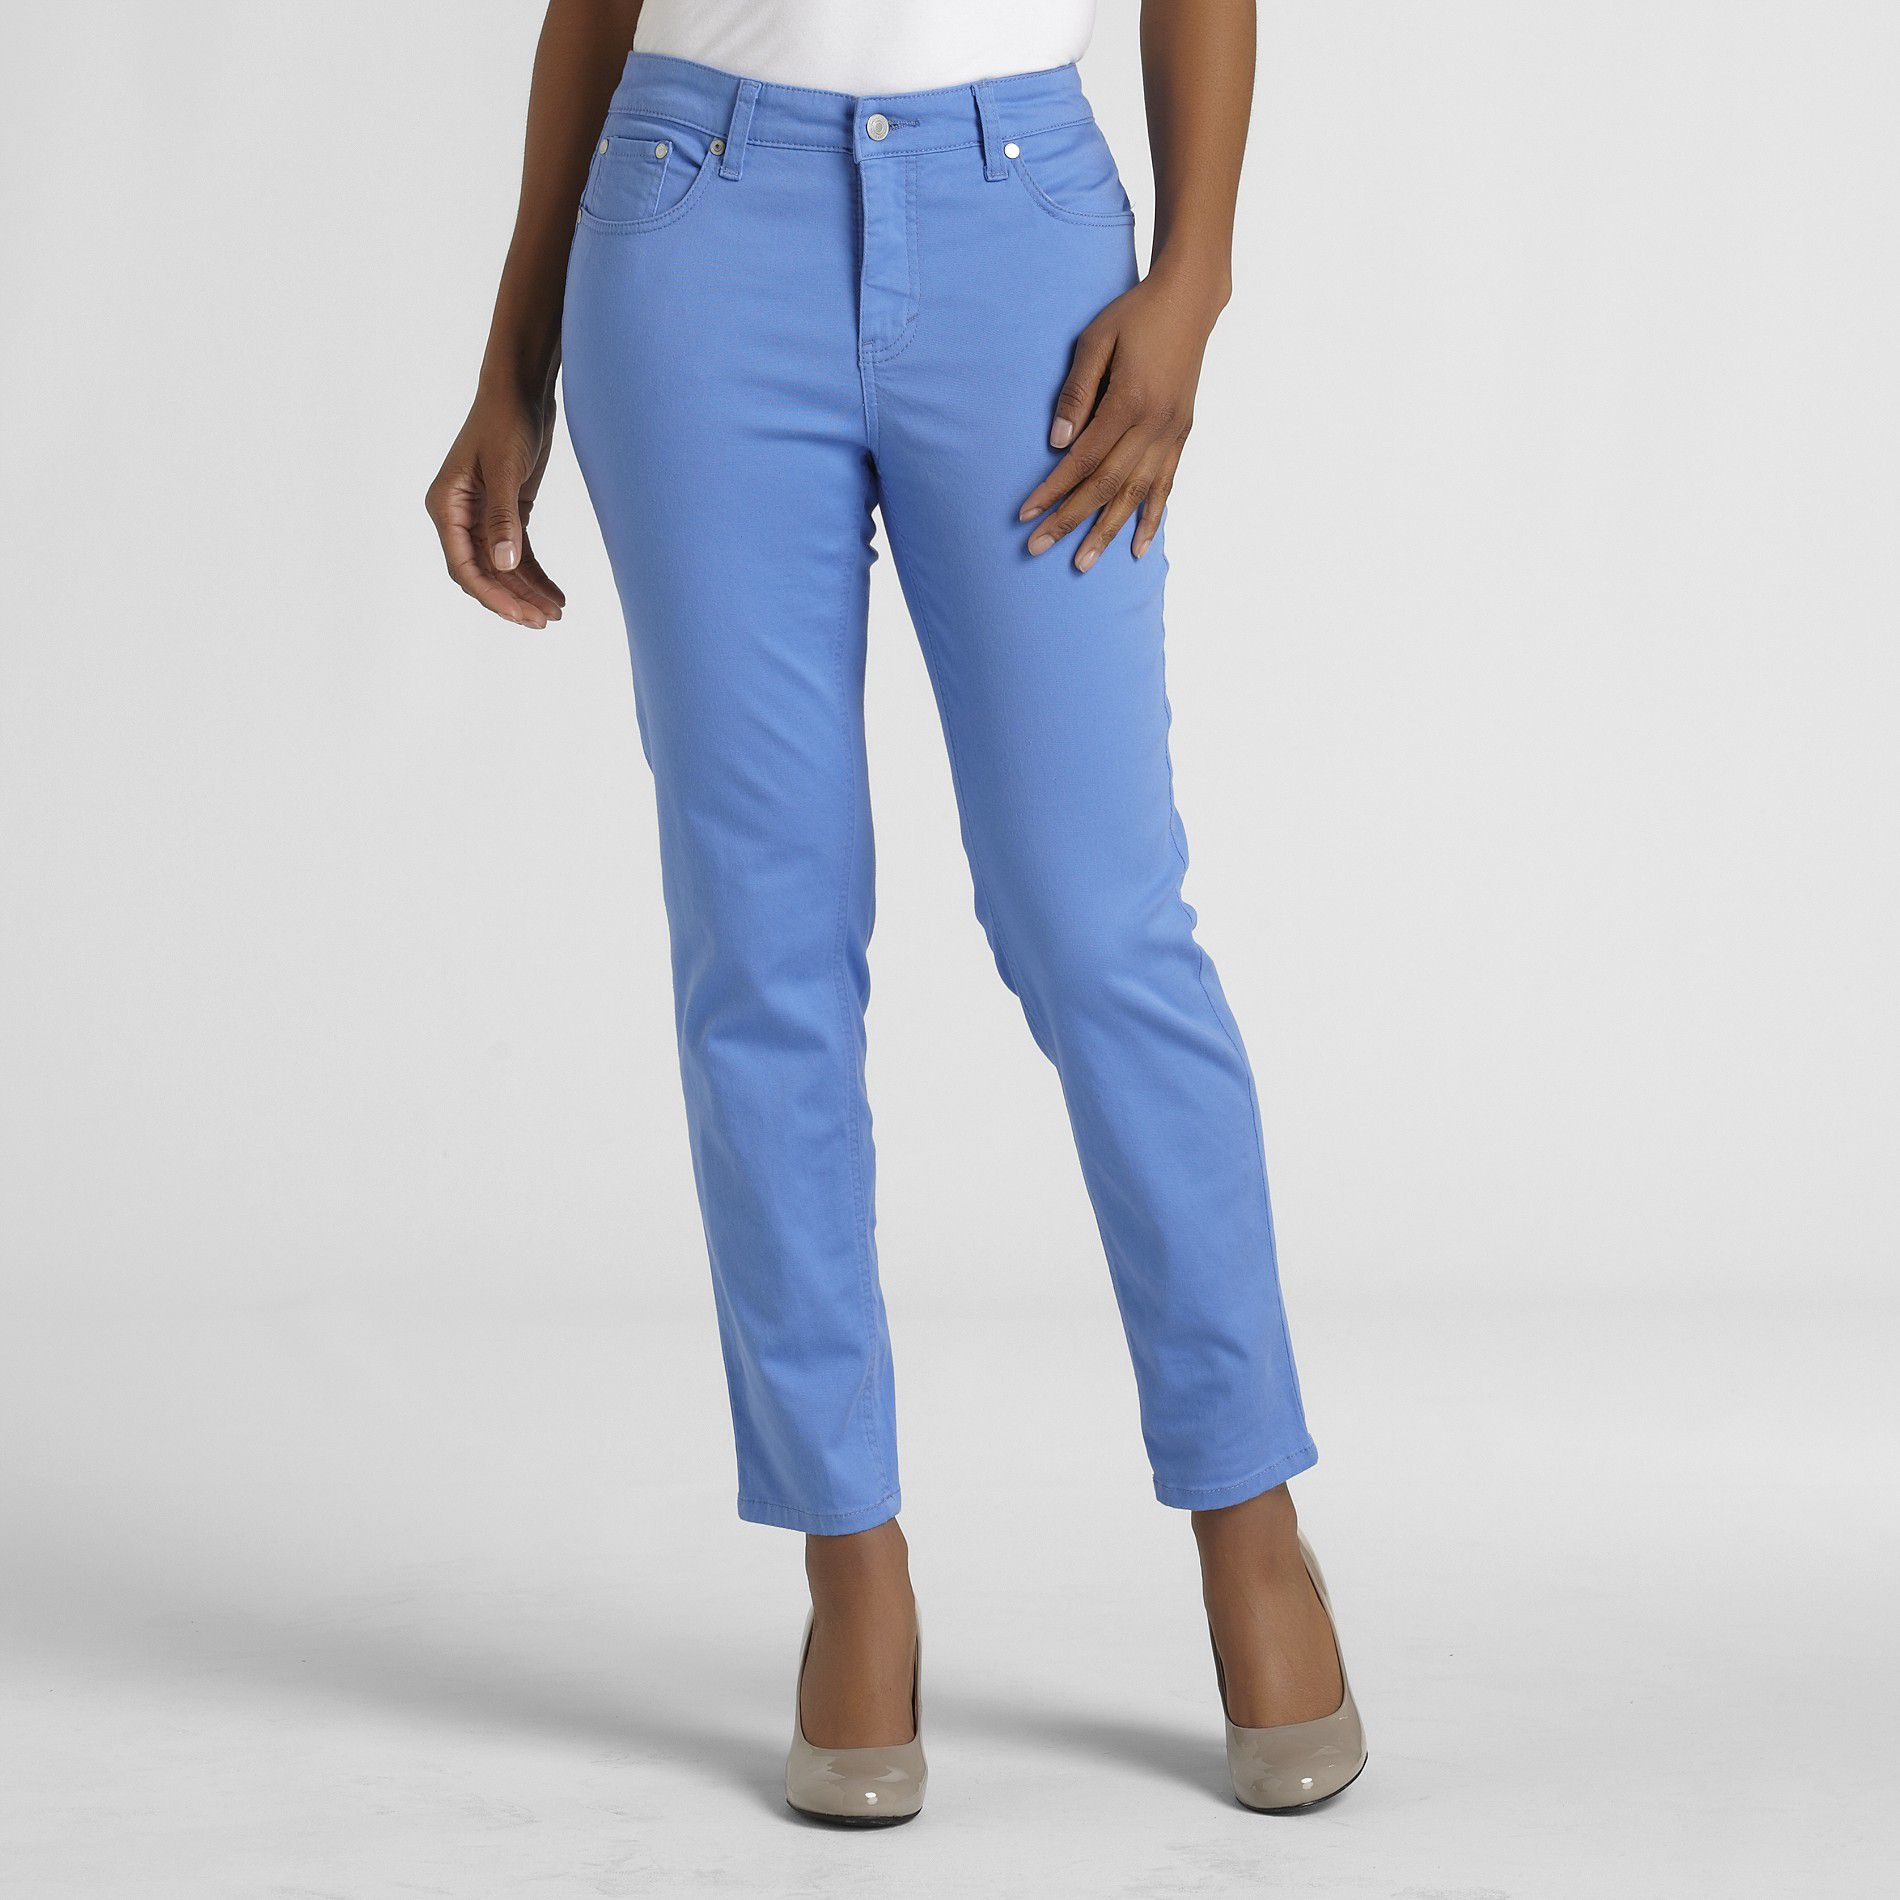 Jaclyn Smith Women's Slim Ankle Stretch Color Jeans at Kmart.com